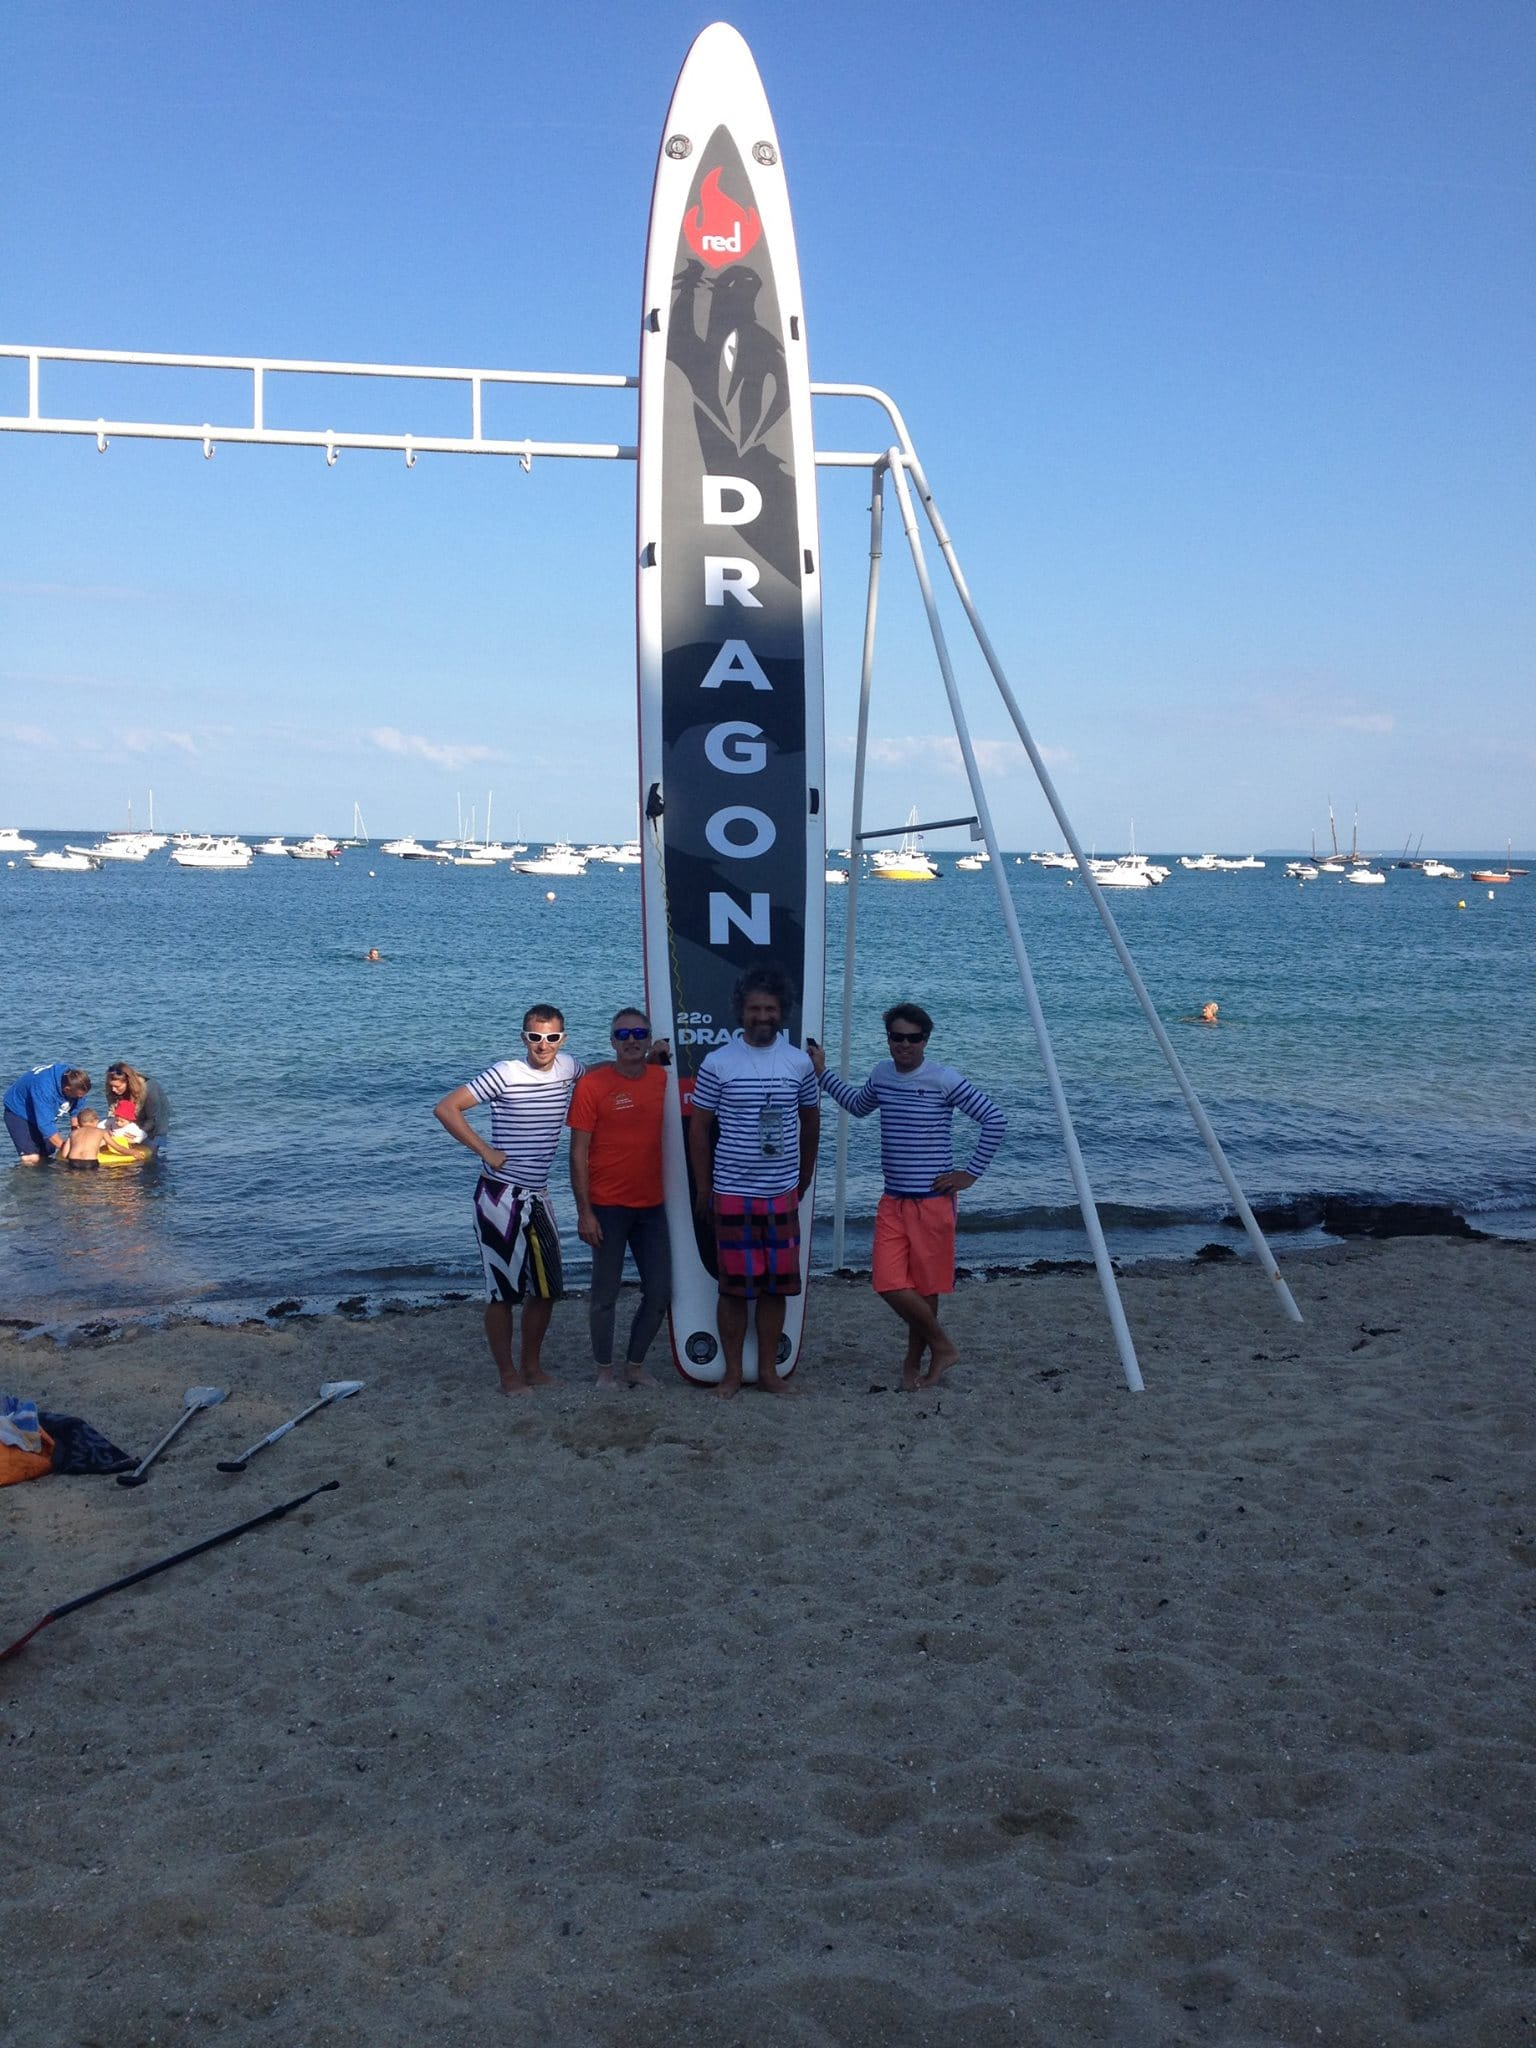 dragon stand up paddle 2